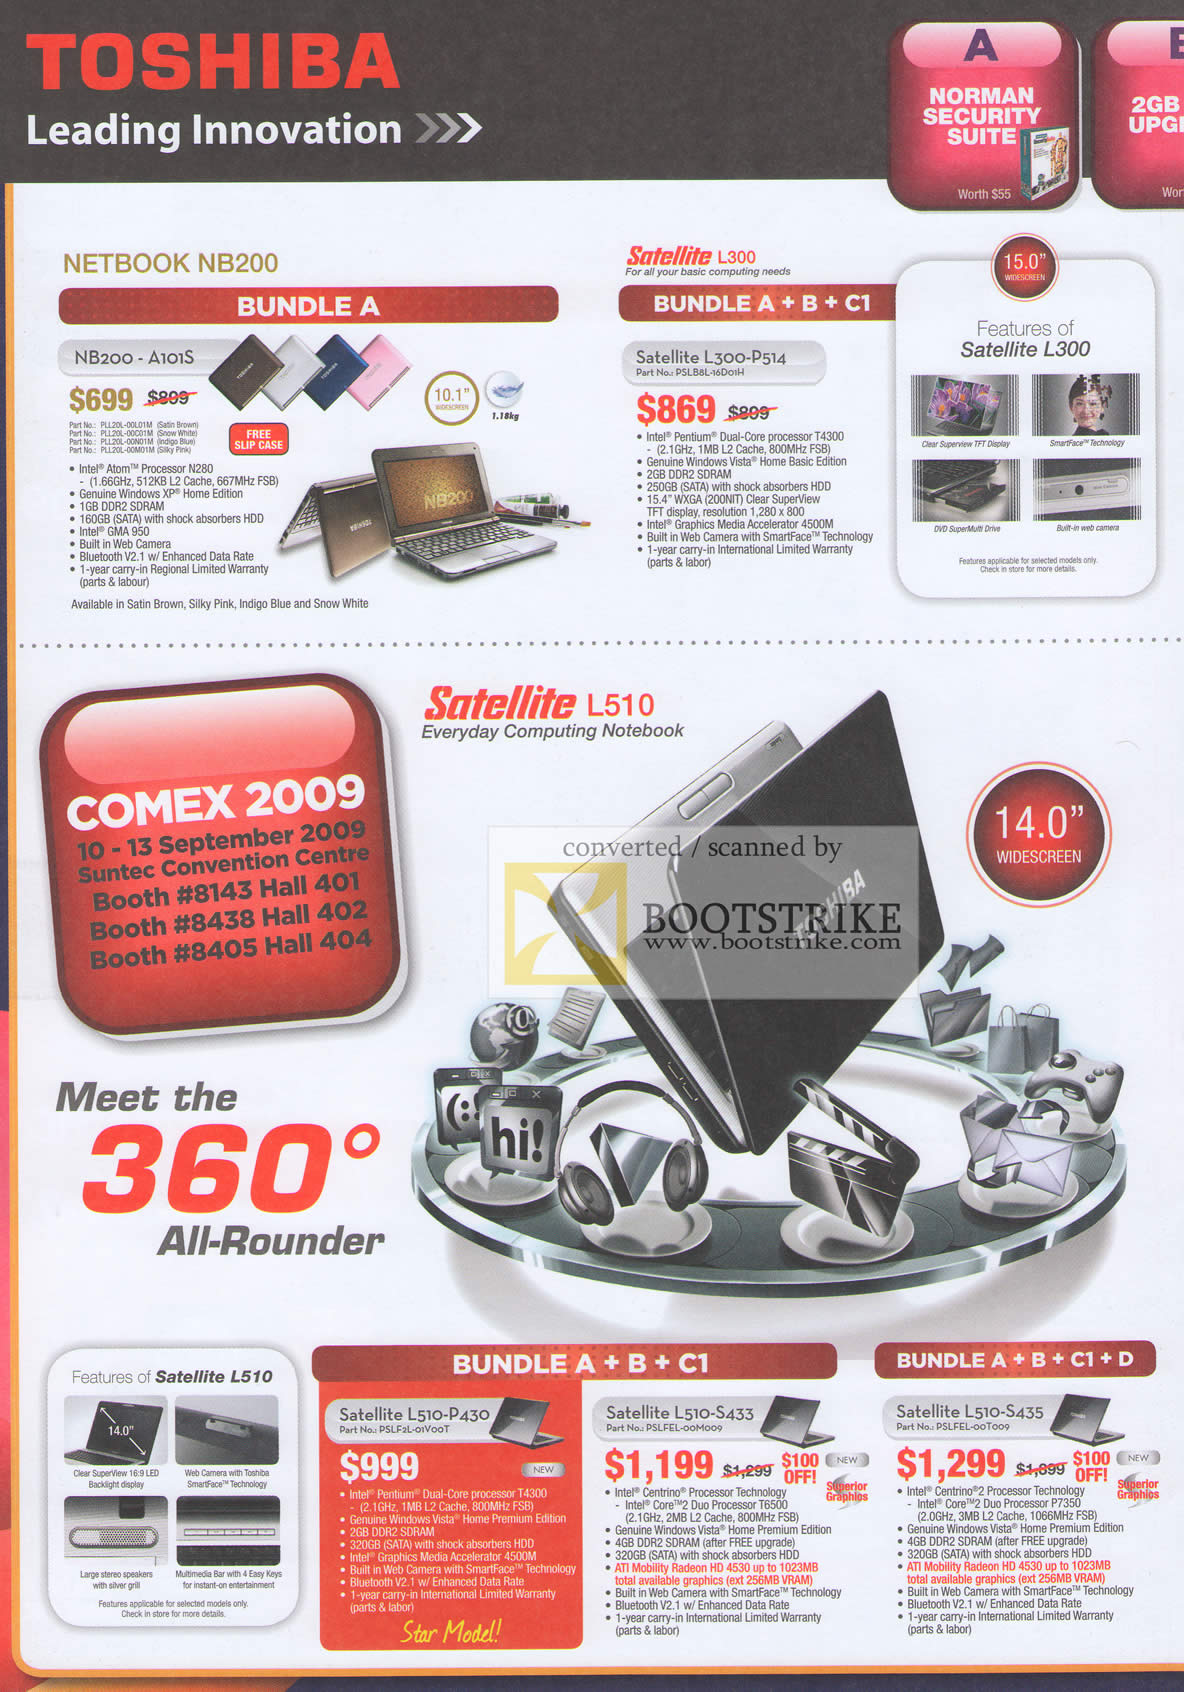 Comex 2009 price list image brochure of Toshiba Netbook N8200-A101s Satellite Notebook L300-P514 L510